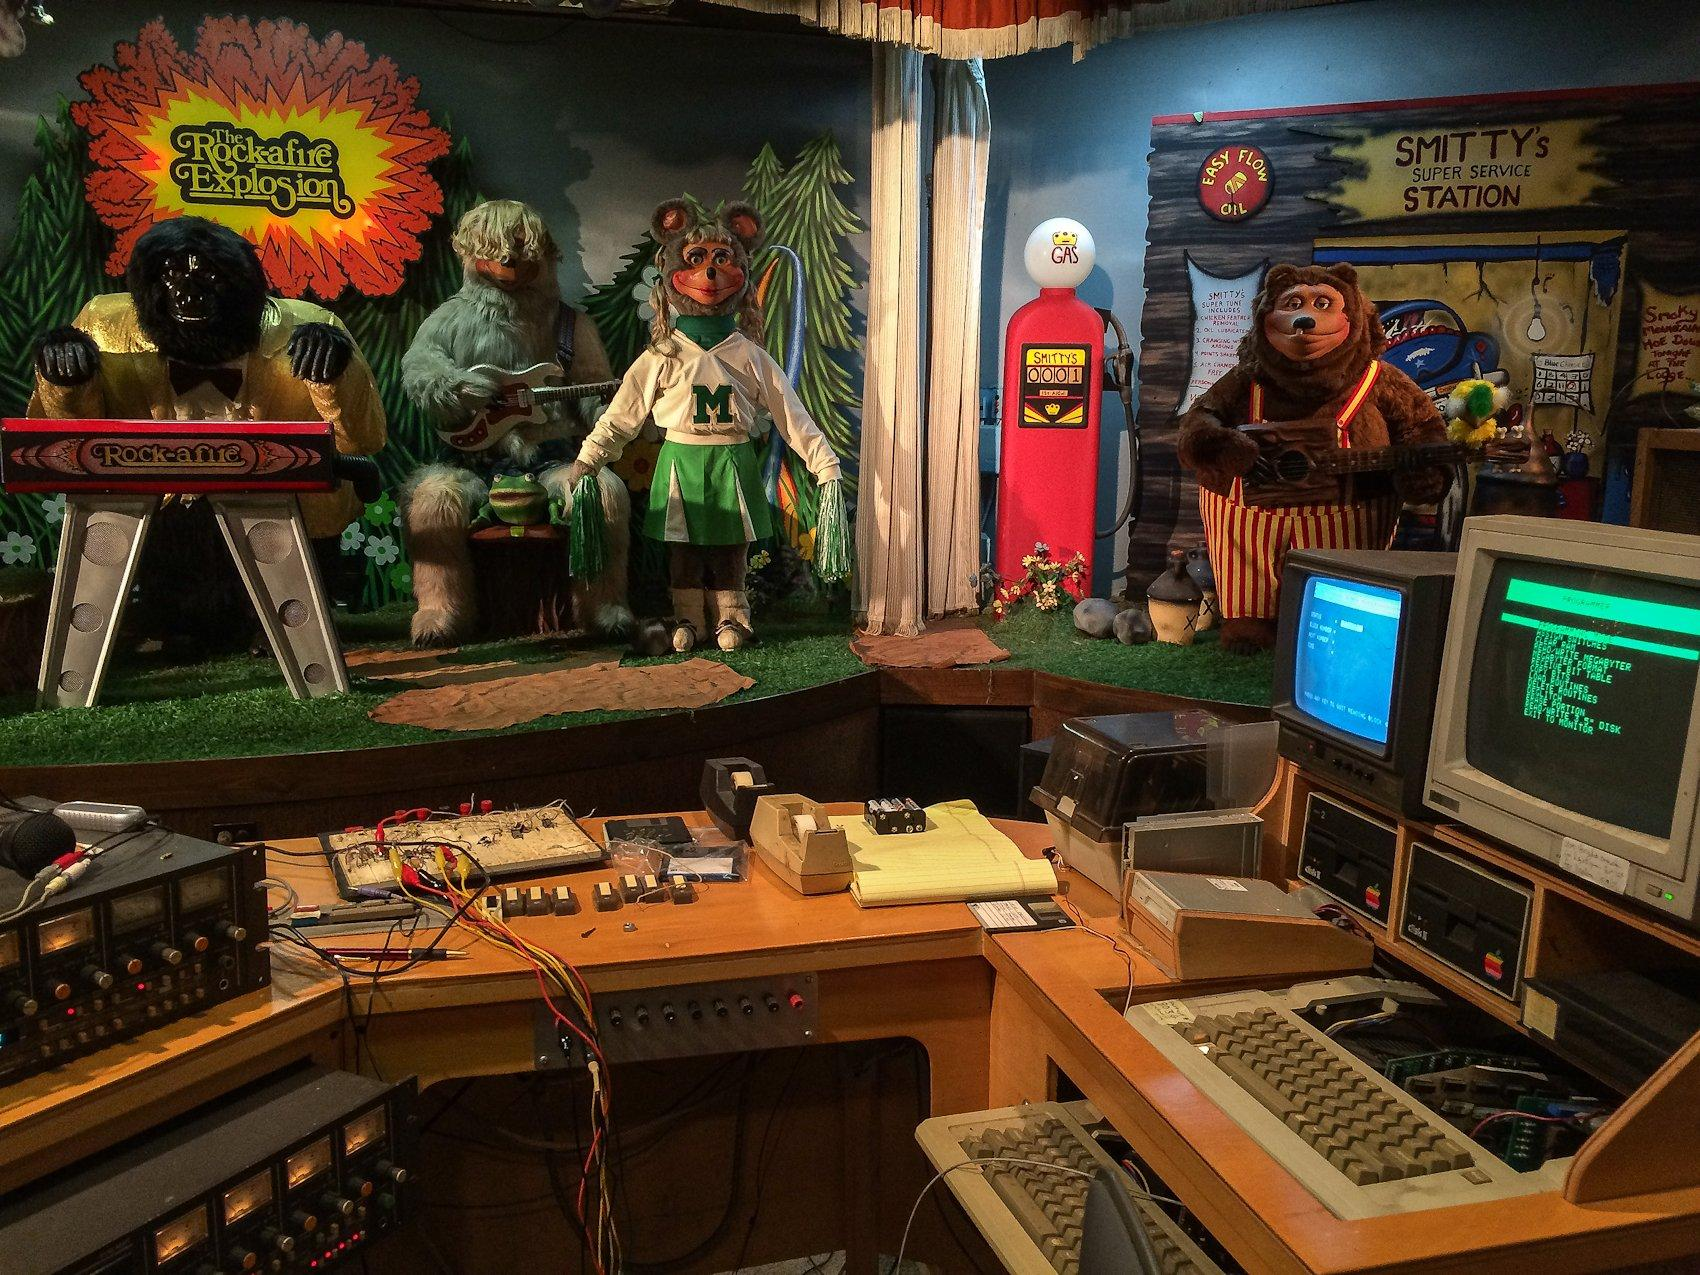 Rock-afire in front of the controls